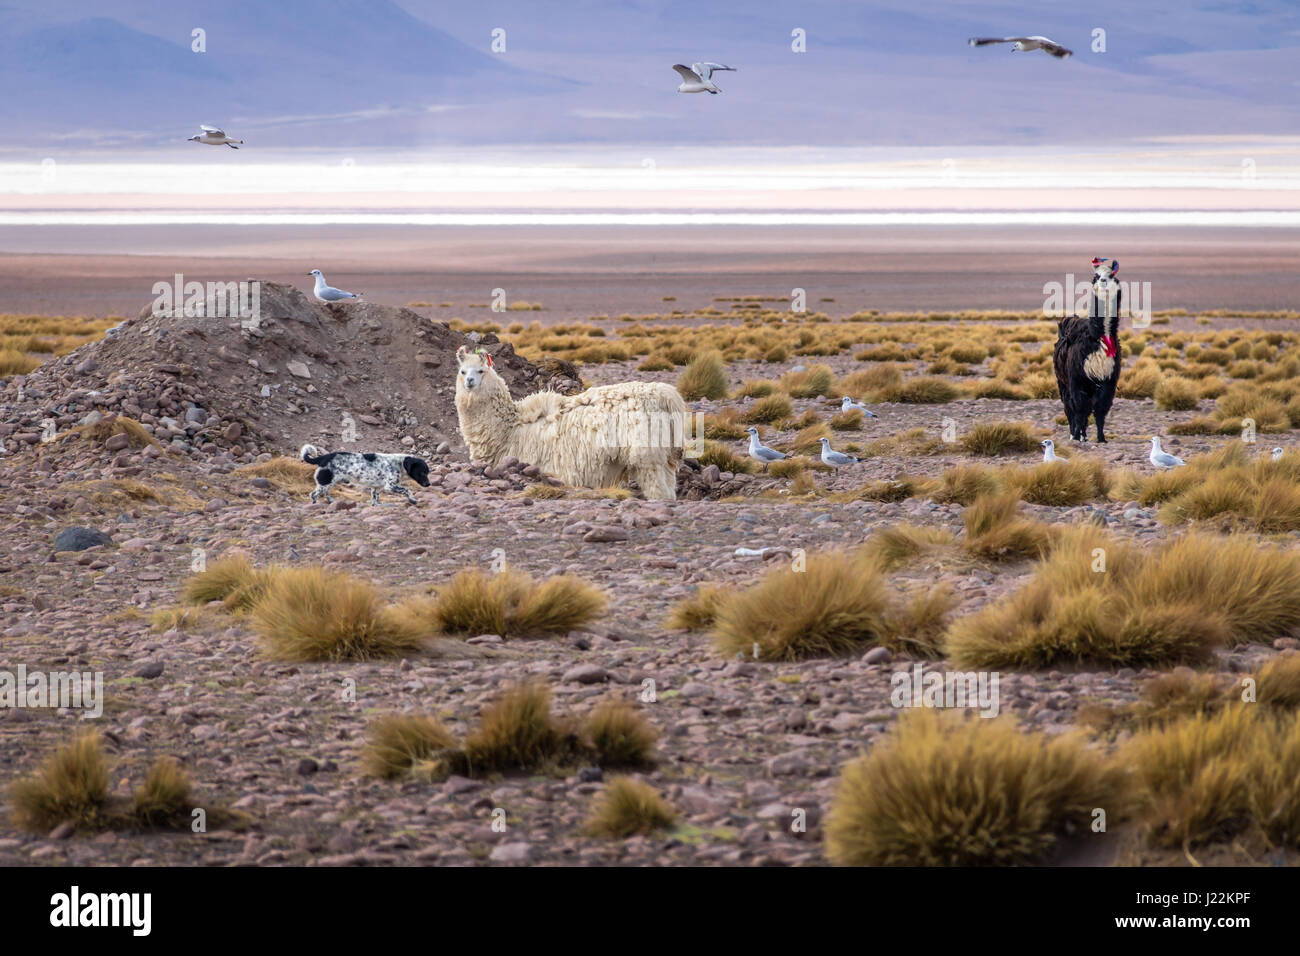 Llamas in Bolivean altiplano - Potosi Department, Bolivia - Stock Image